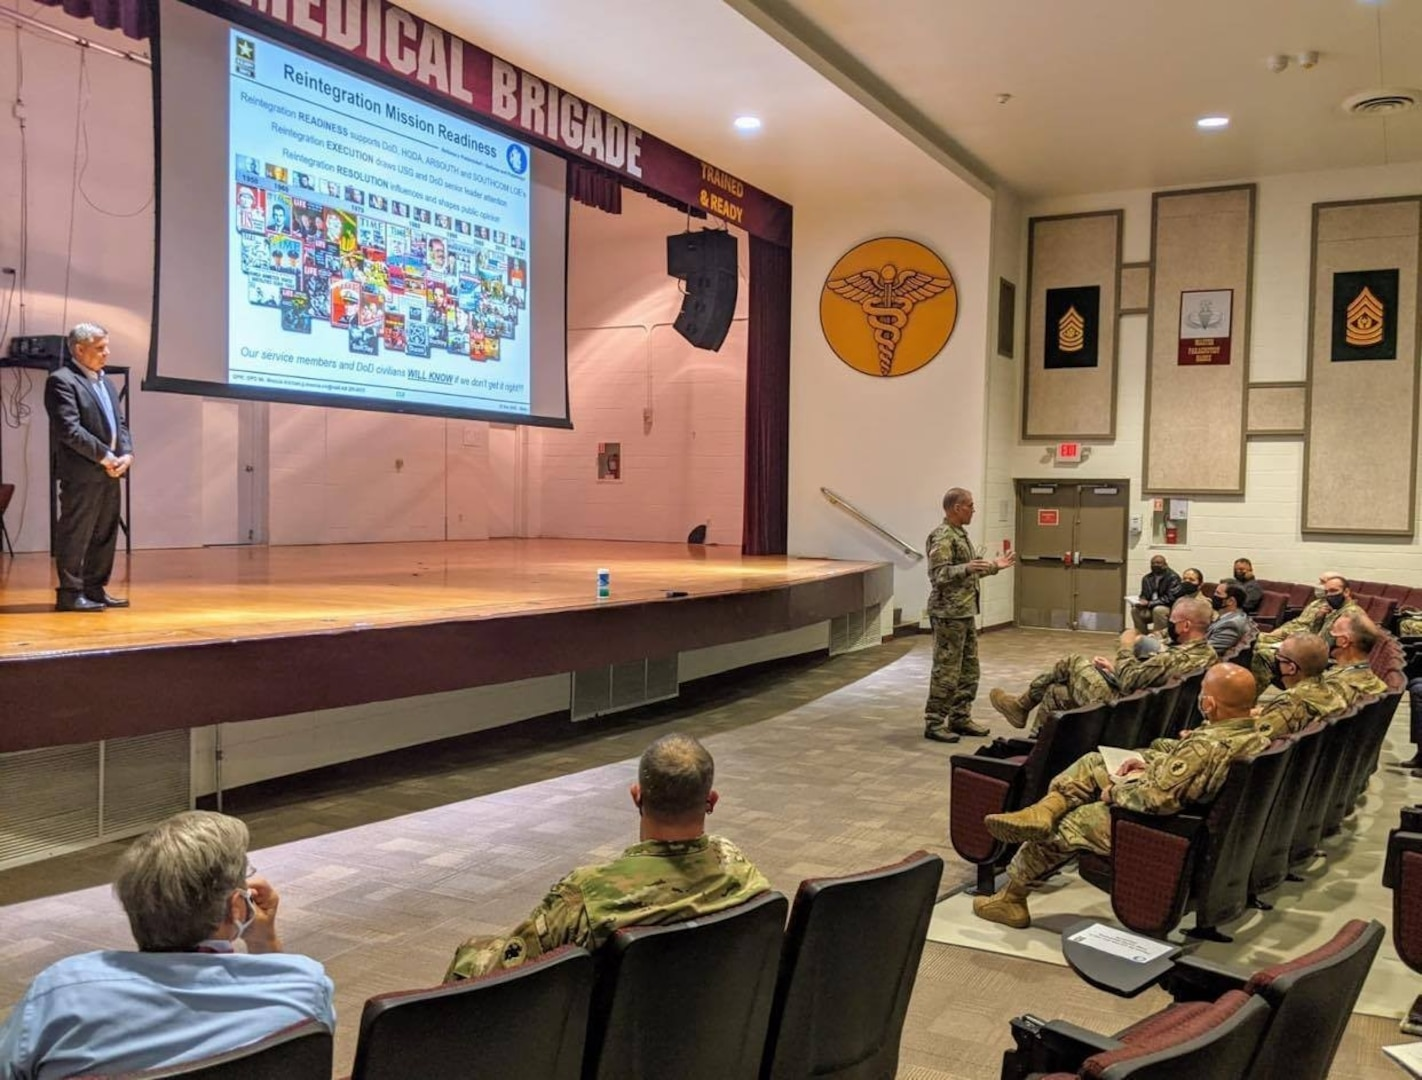 Maj. Gen. Daniel R. Walrath (right), commanding general, U.S. Army South, provides remarks during the Reintegration Working Group mission readiness brief at Evans Auditorium Dec. 3.